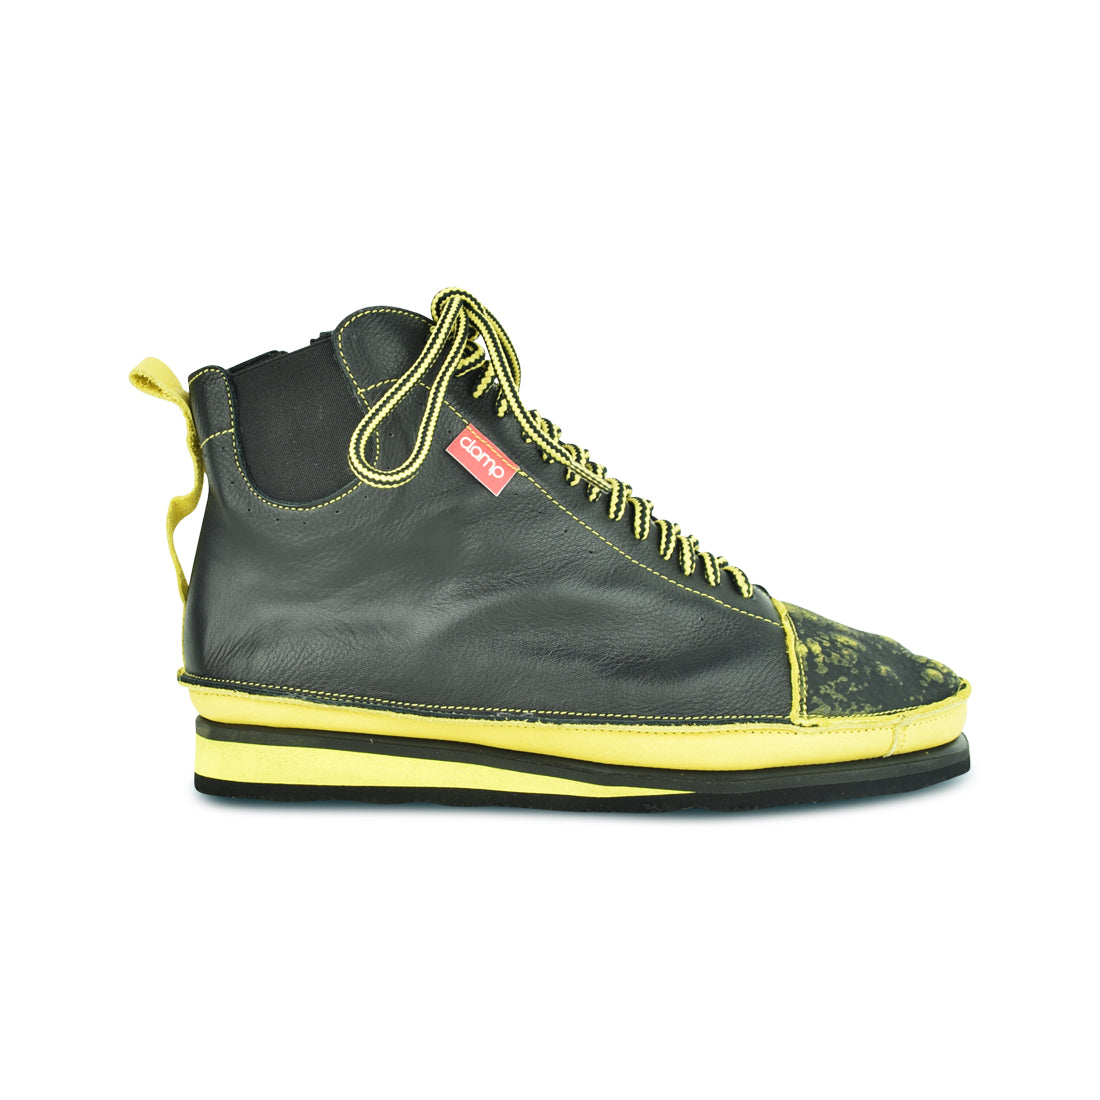 BONNAIR - Clamp Lace Up Black/Yellow